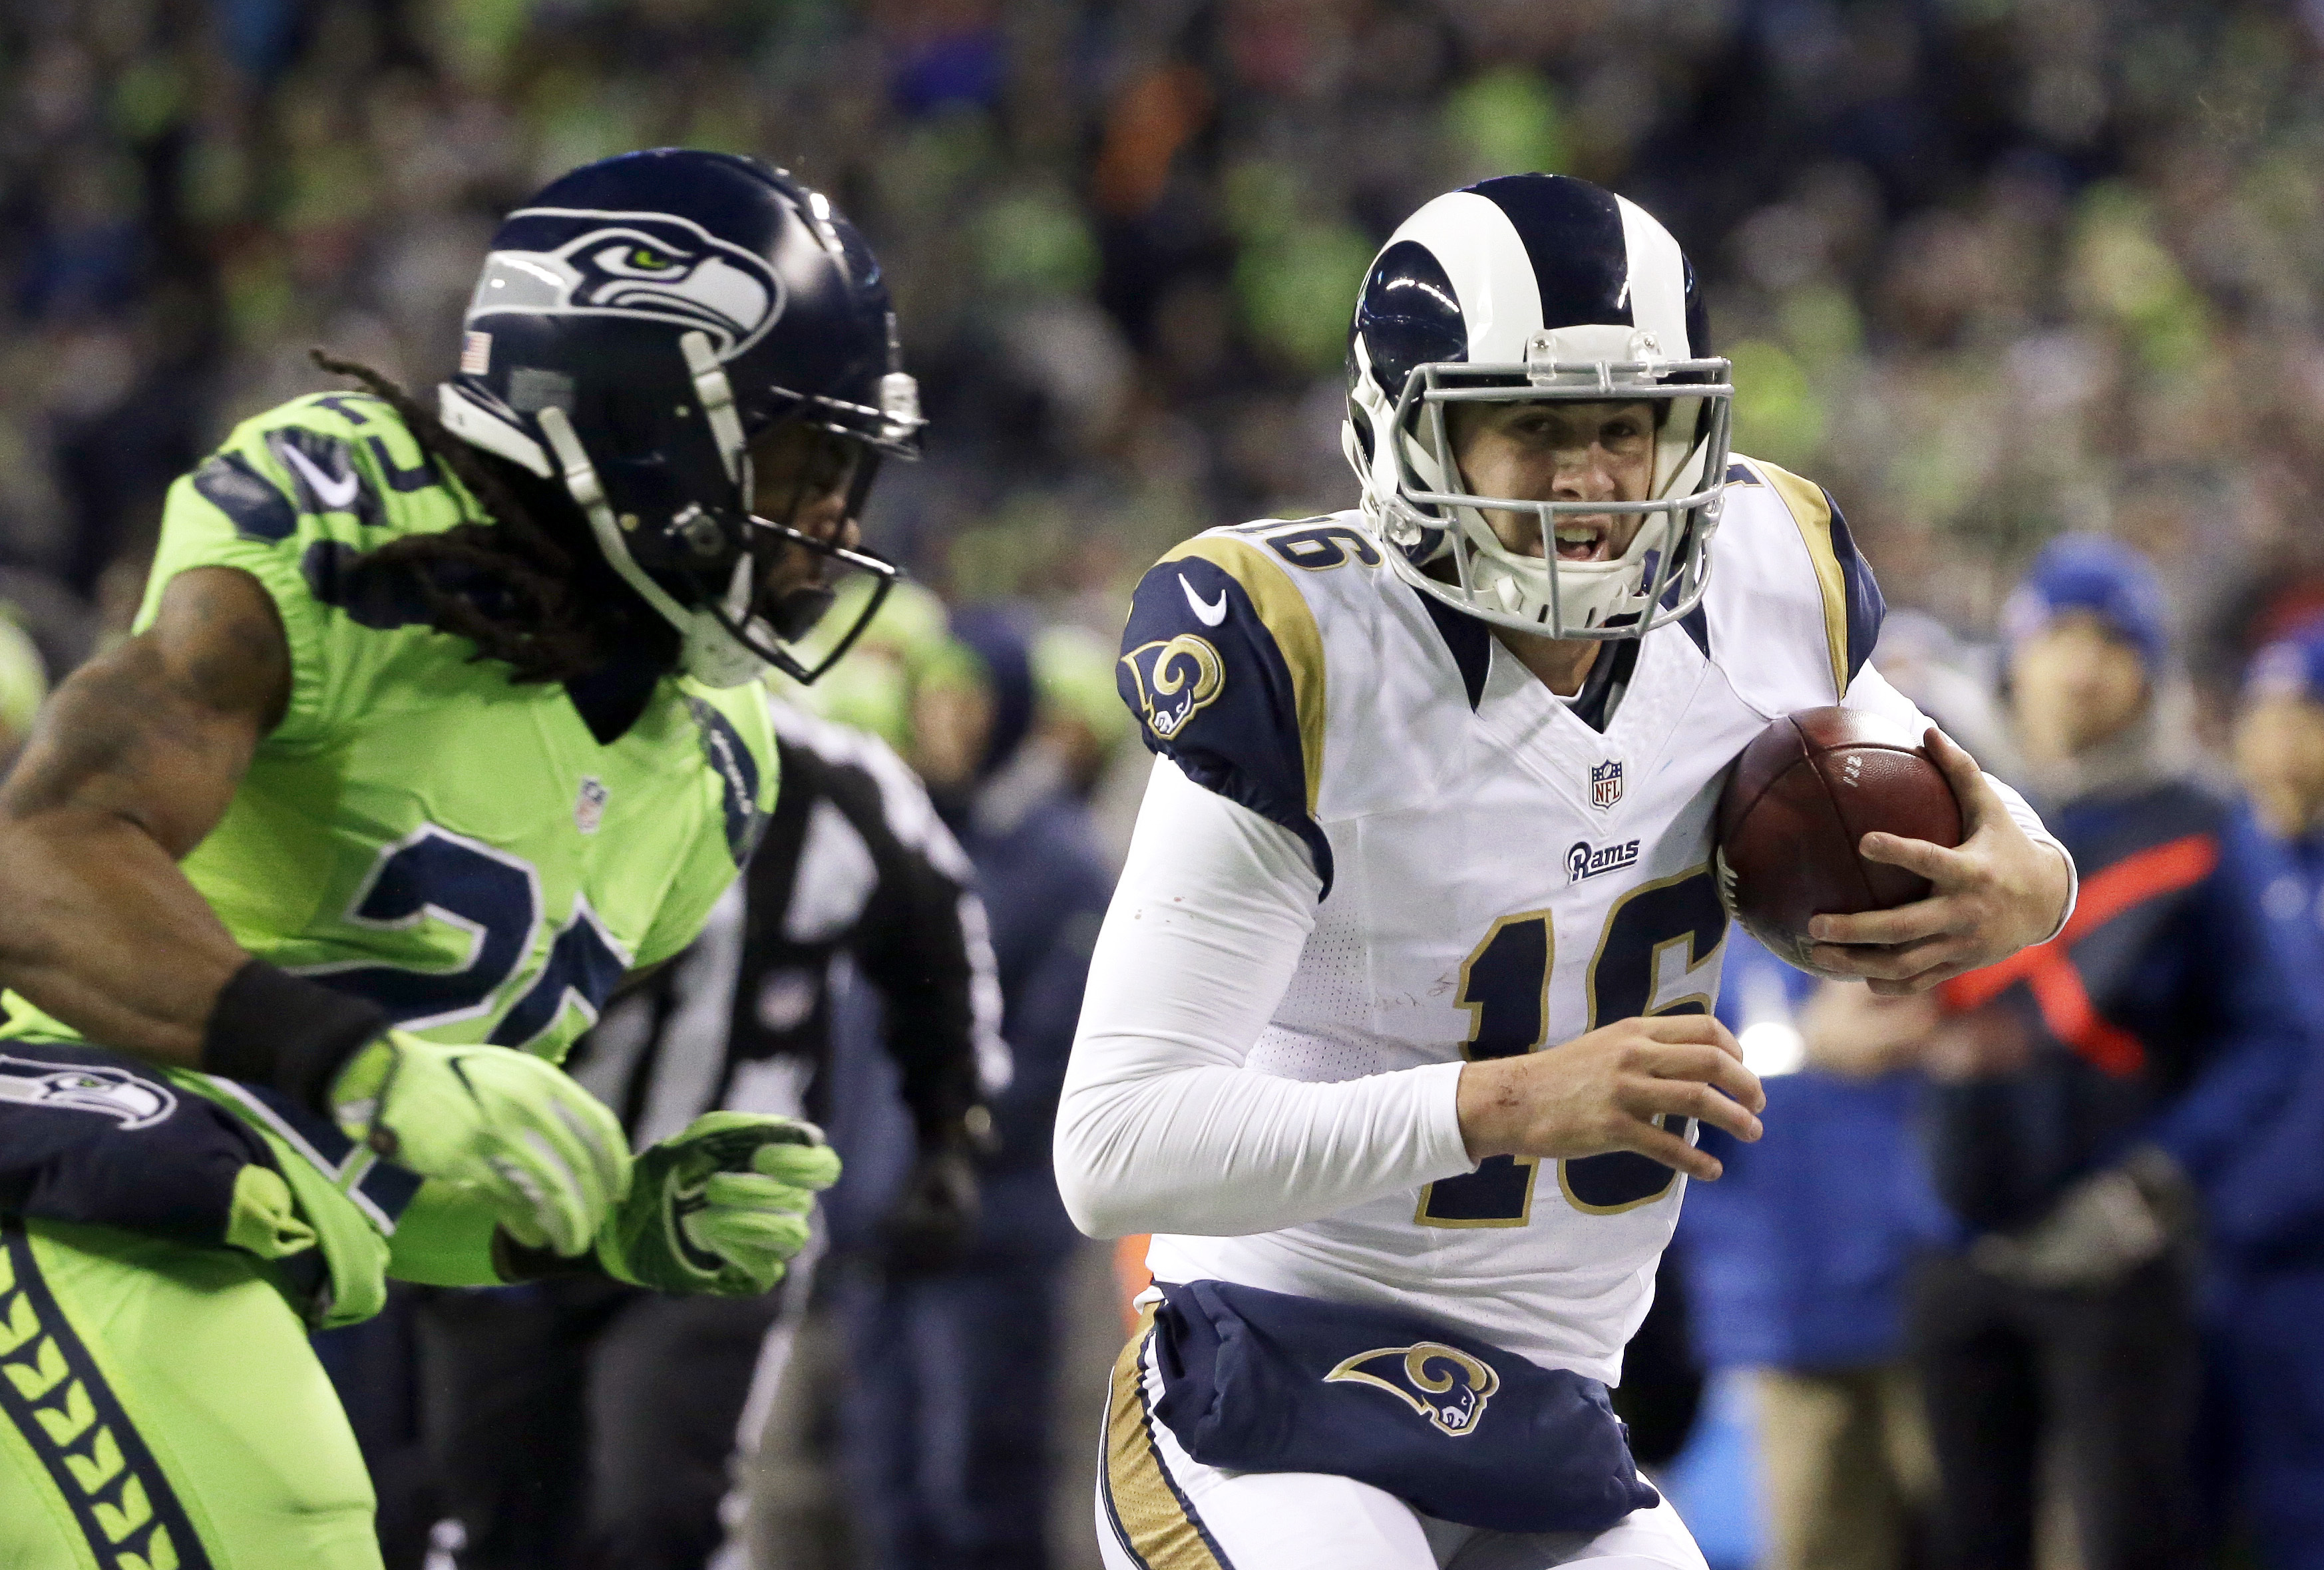 Los Angeles Rams quarterback Jared Goff, right, heads for the sideline just before being hit by Seattle Seahawks cornerback Richard Sherman, left, in the second half of an NFL football game, Thursday, Dec. 15, 2016, in Seattle. Goff left the field with an